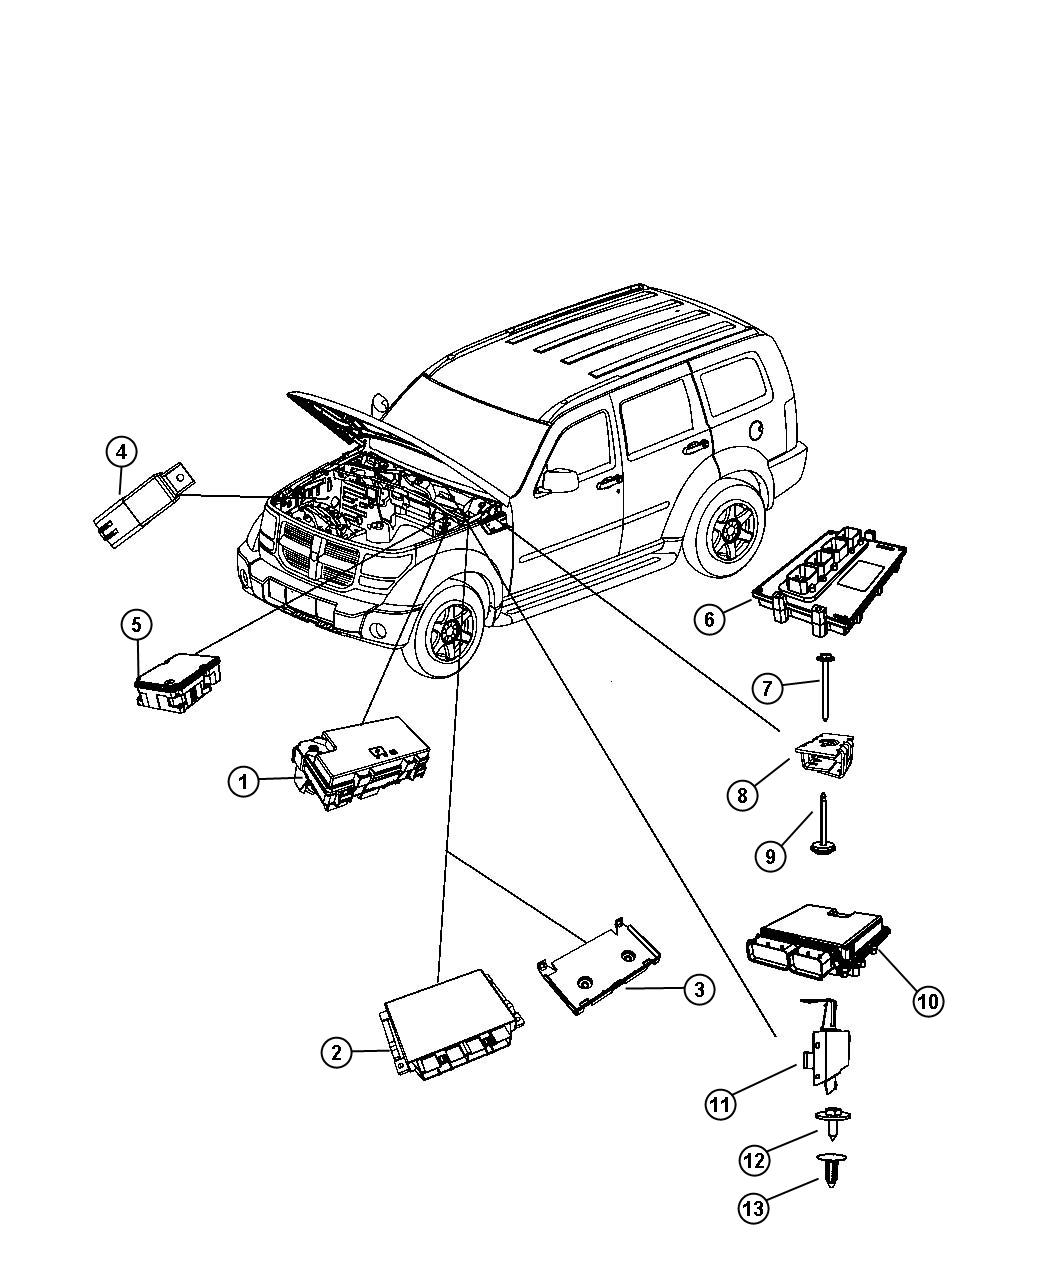 Dodge Nitro Engine Compartment Diagram